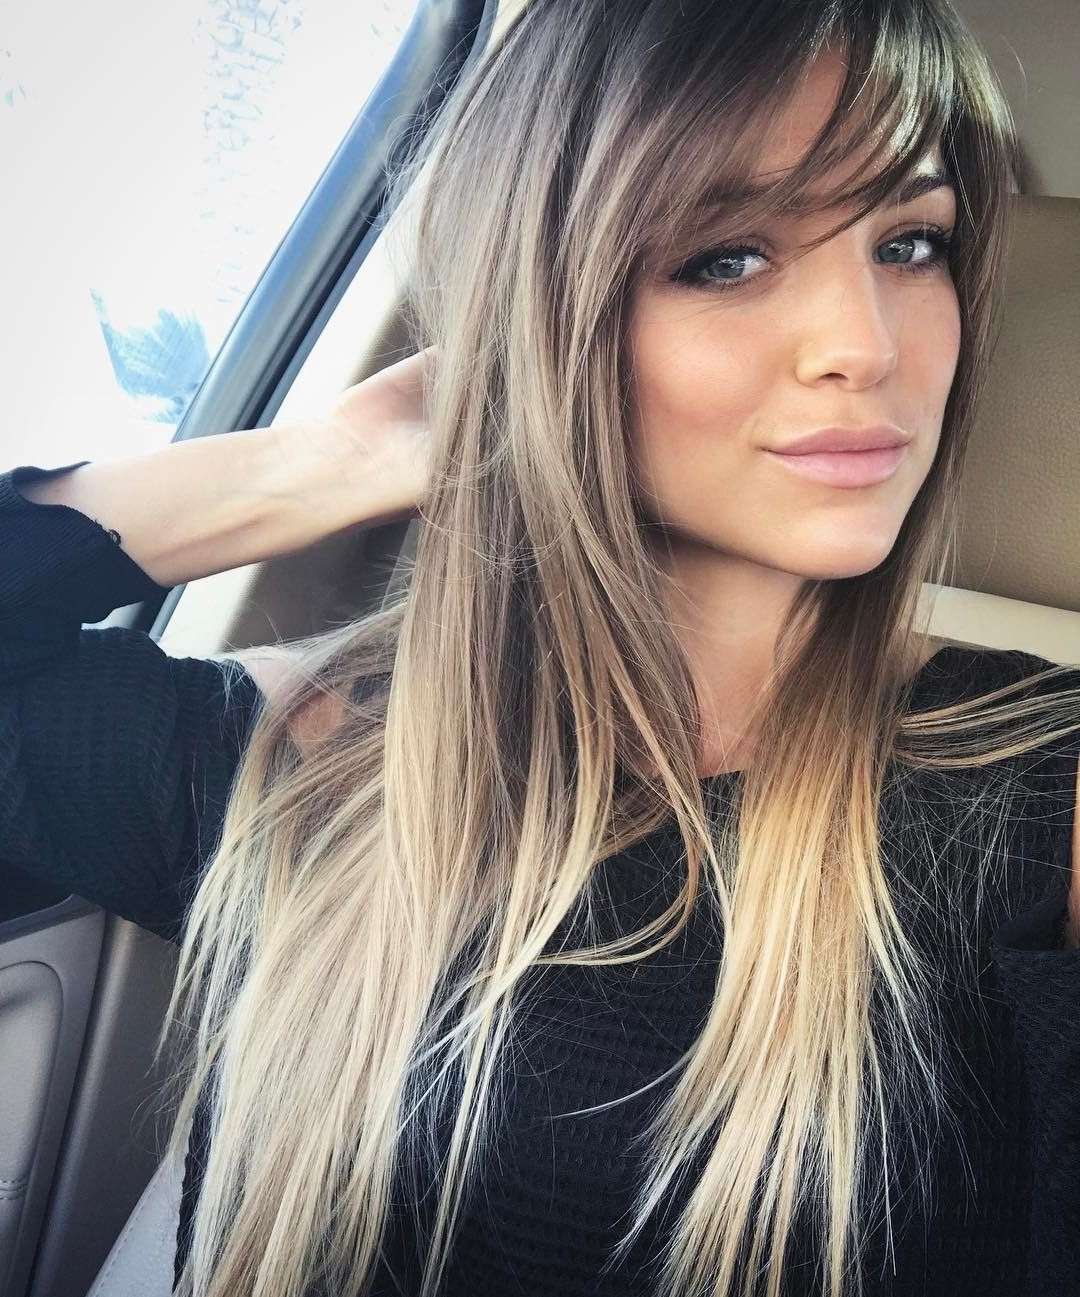 Bangs Hairstyles Fringe Within Most Recently Released Cropped Tousled Waves And Side Bangs Hairstyles (View 12 of 20)